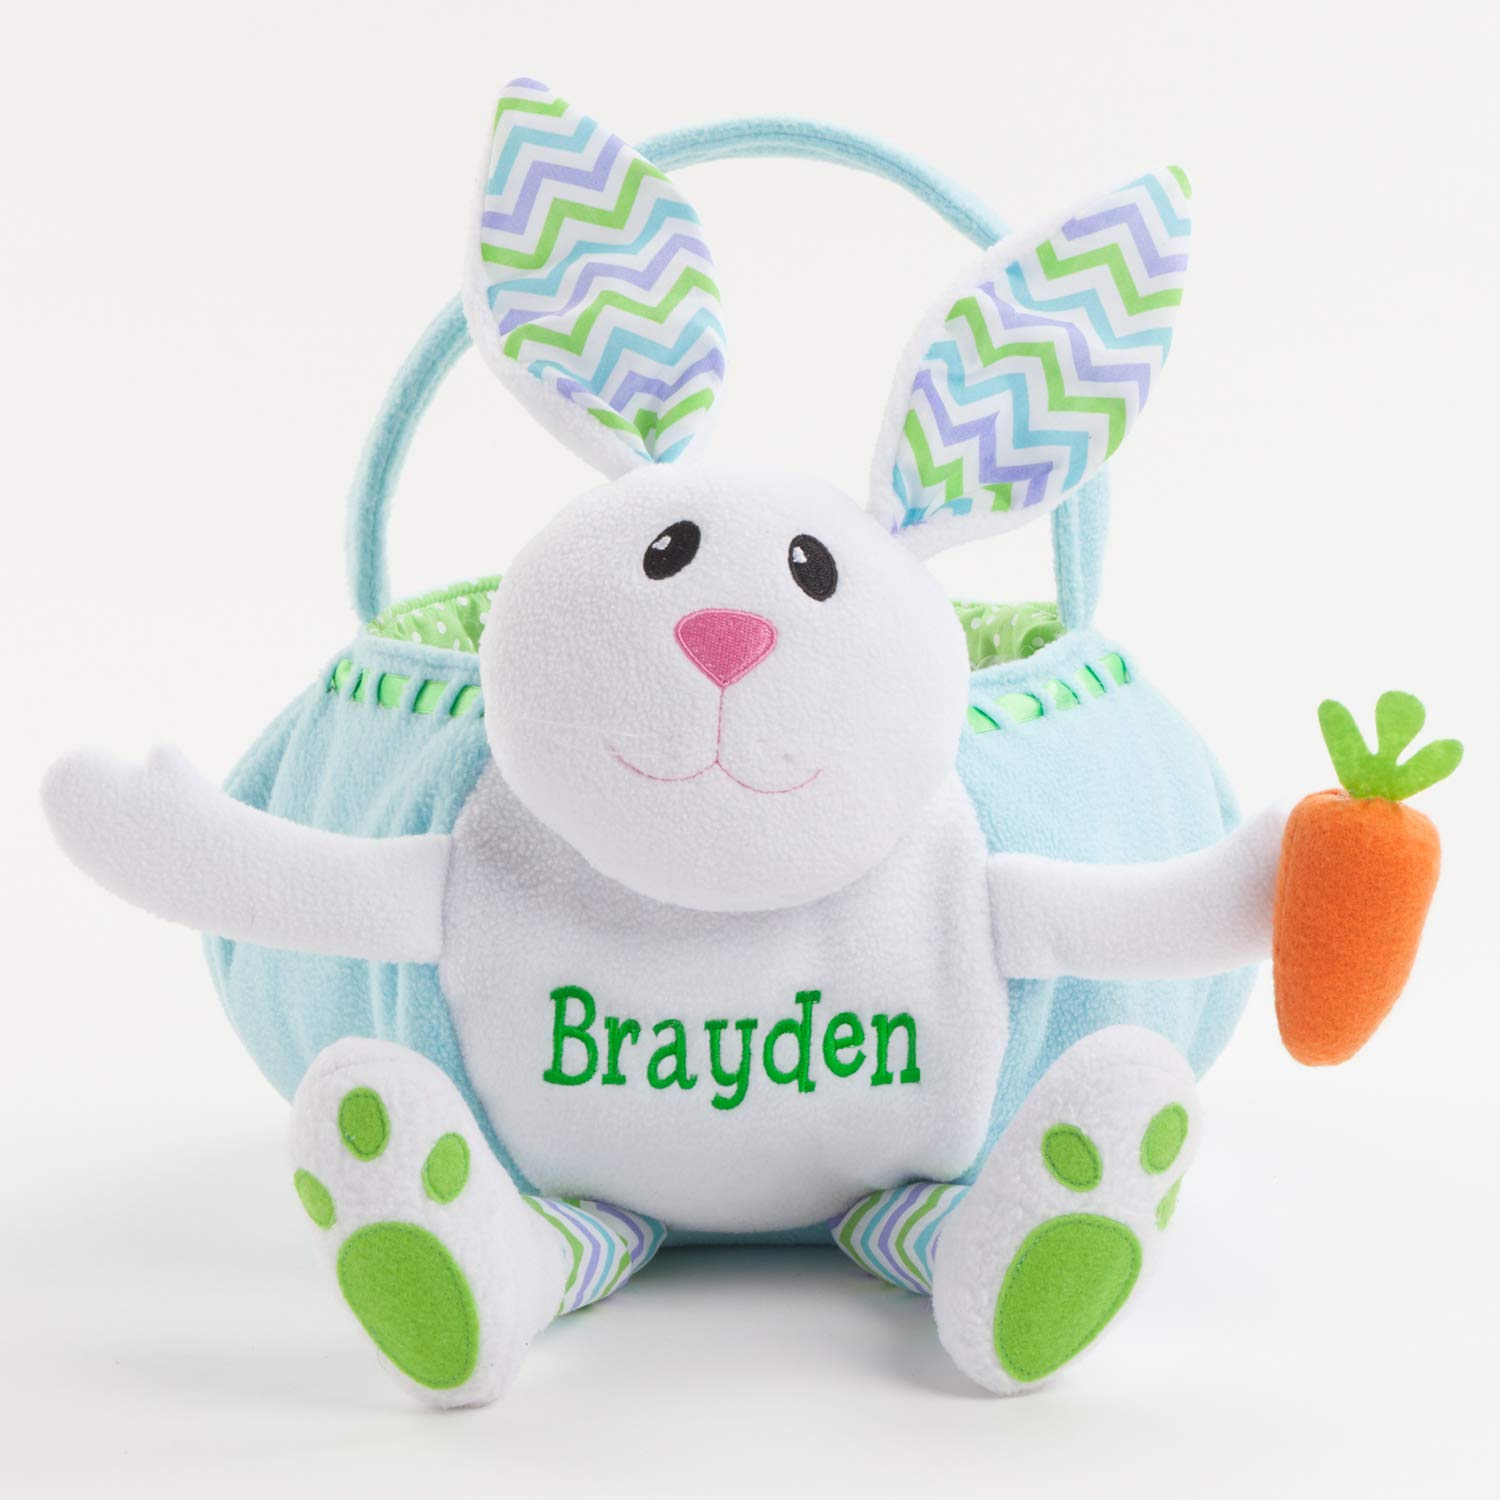 Personalized Blue Plush Easter Bunny Basket with Custom Name Embroidery on Soft White Body with Chevron Patterned Ears and Green Interior Liner, 11x12